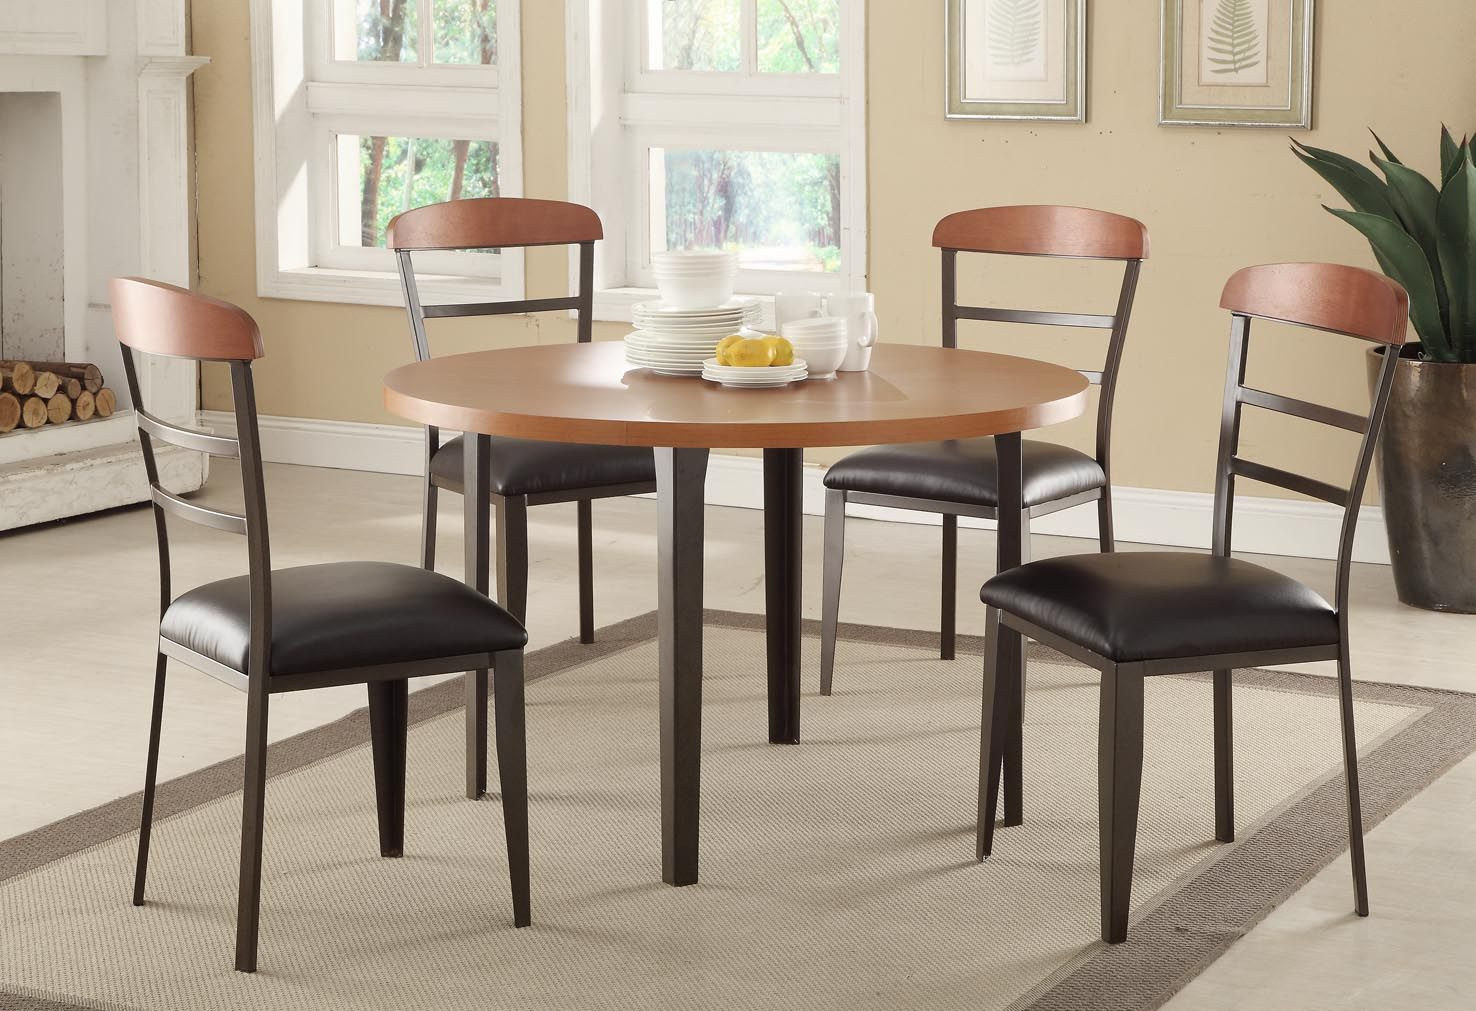 Exquisite Casual Dining Sets San Diego Kitchen Dinette Chairs Modern